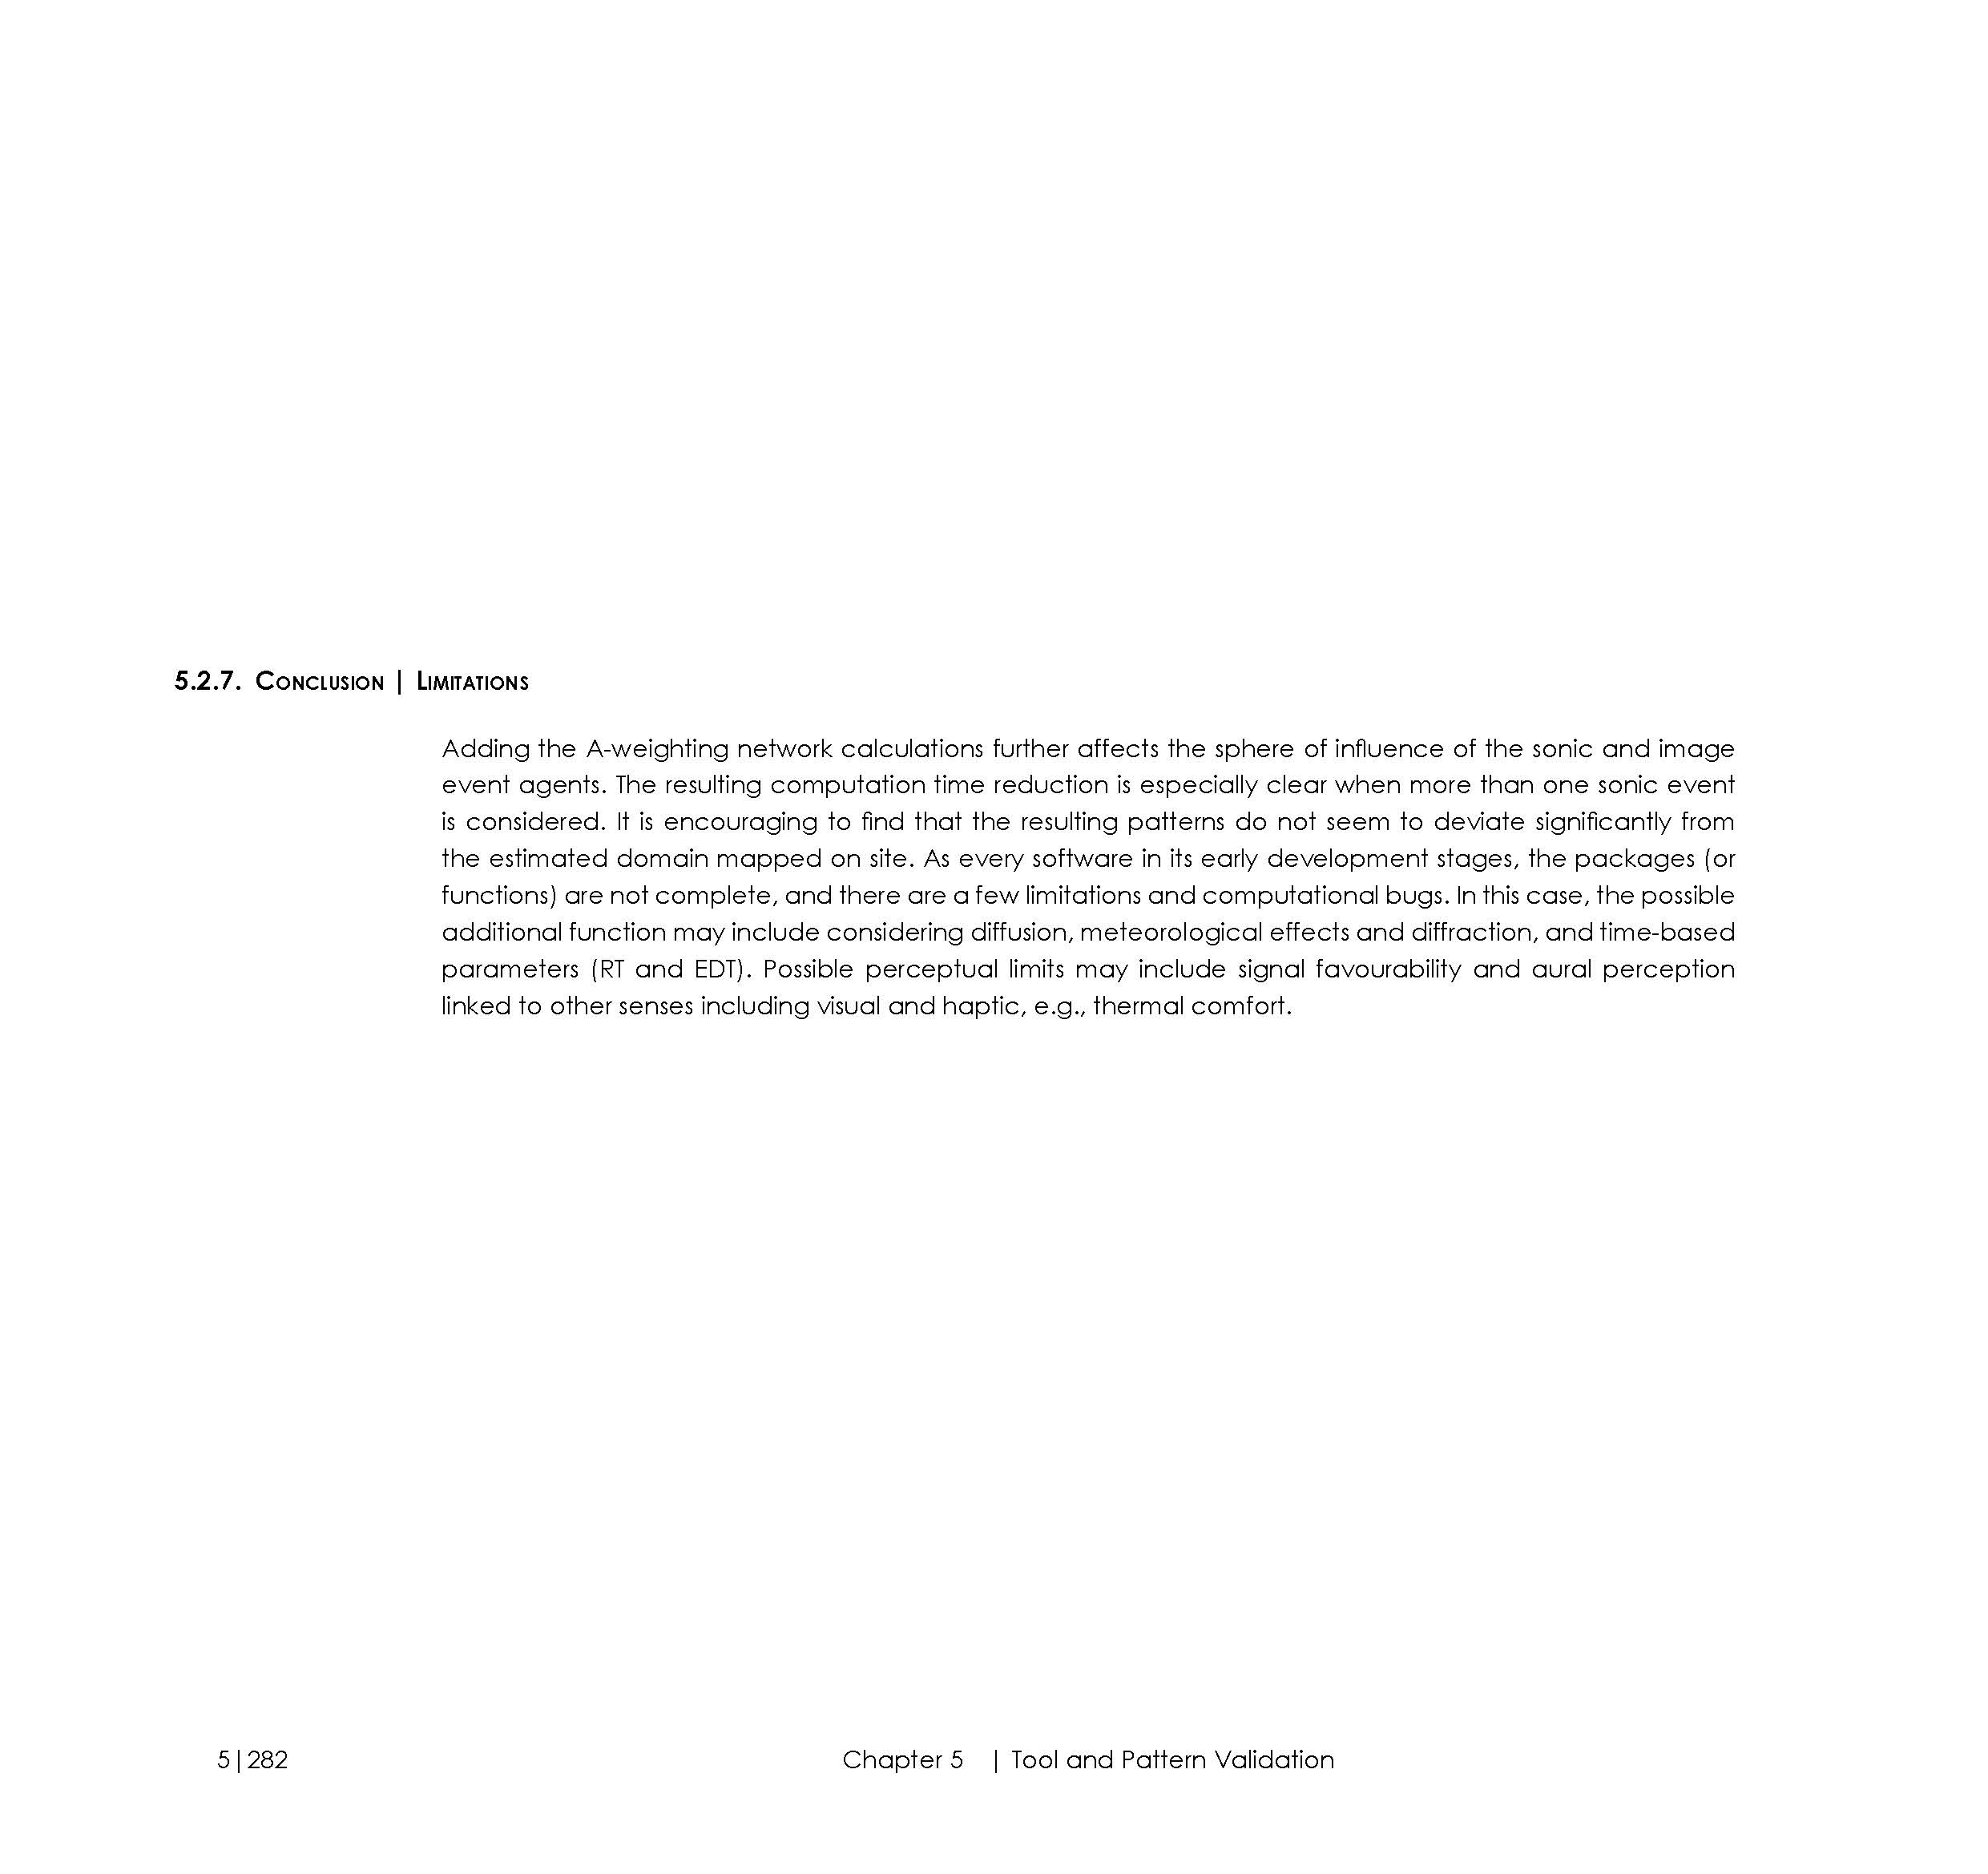 16.03.03_Thesis_01_Interactive_Page_318.jpg